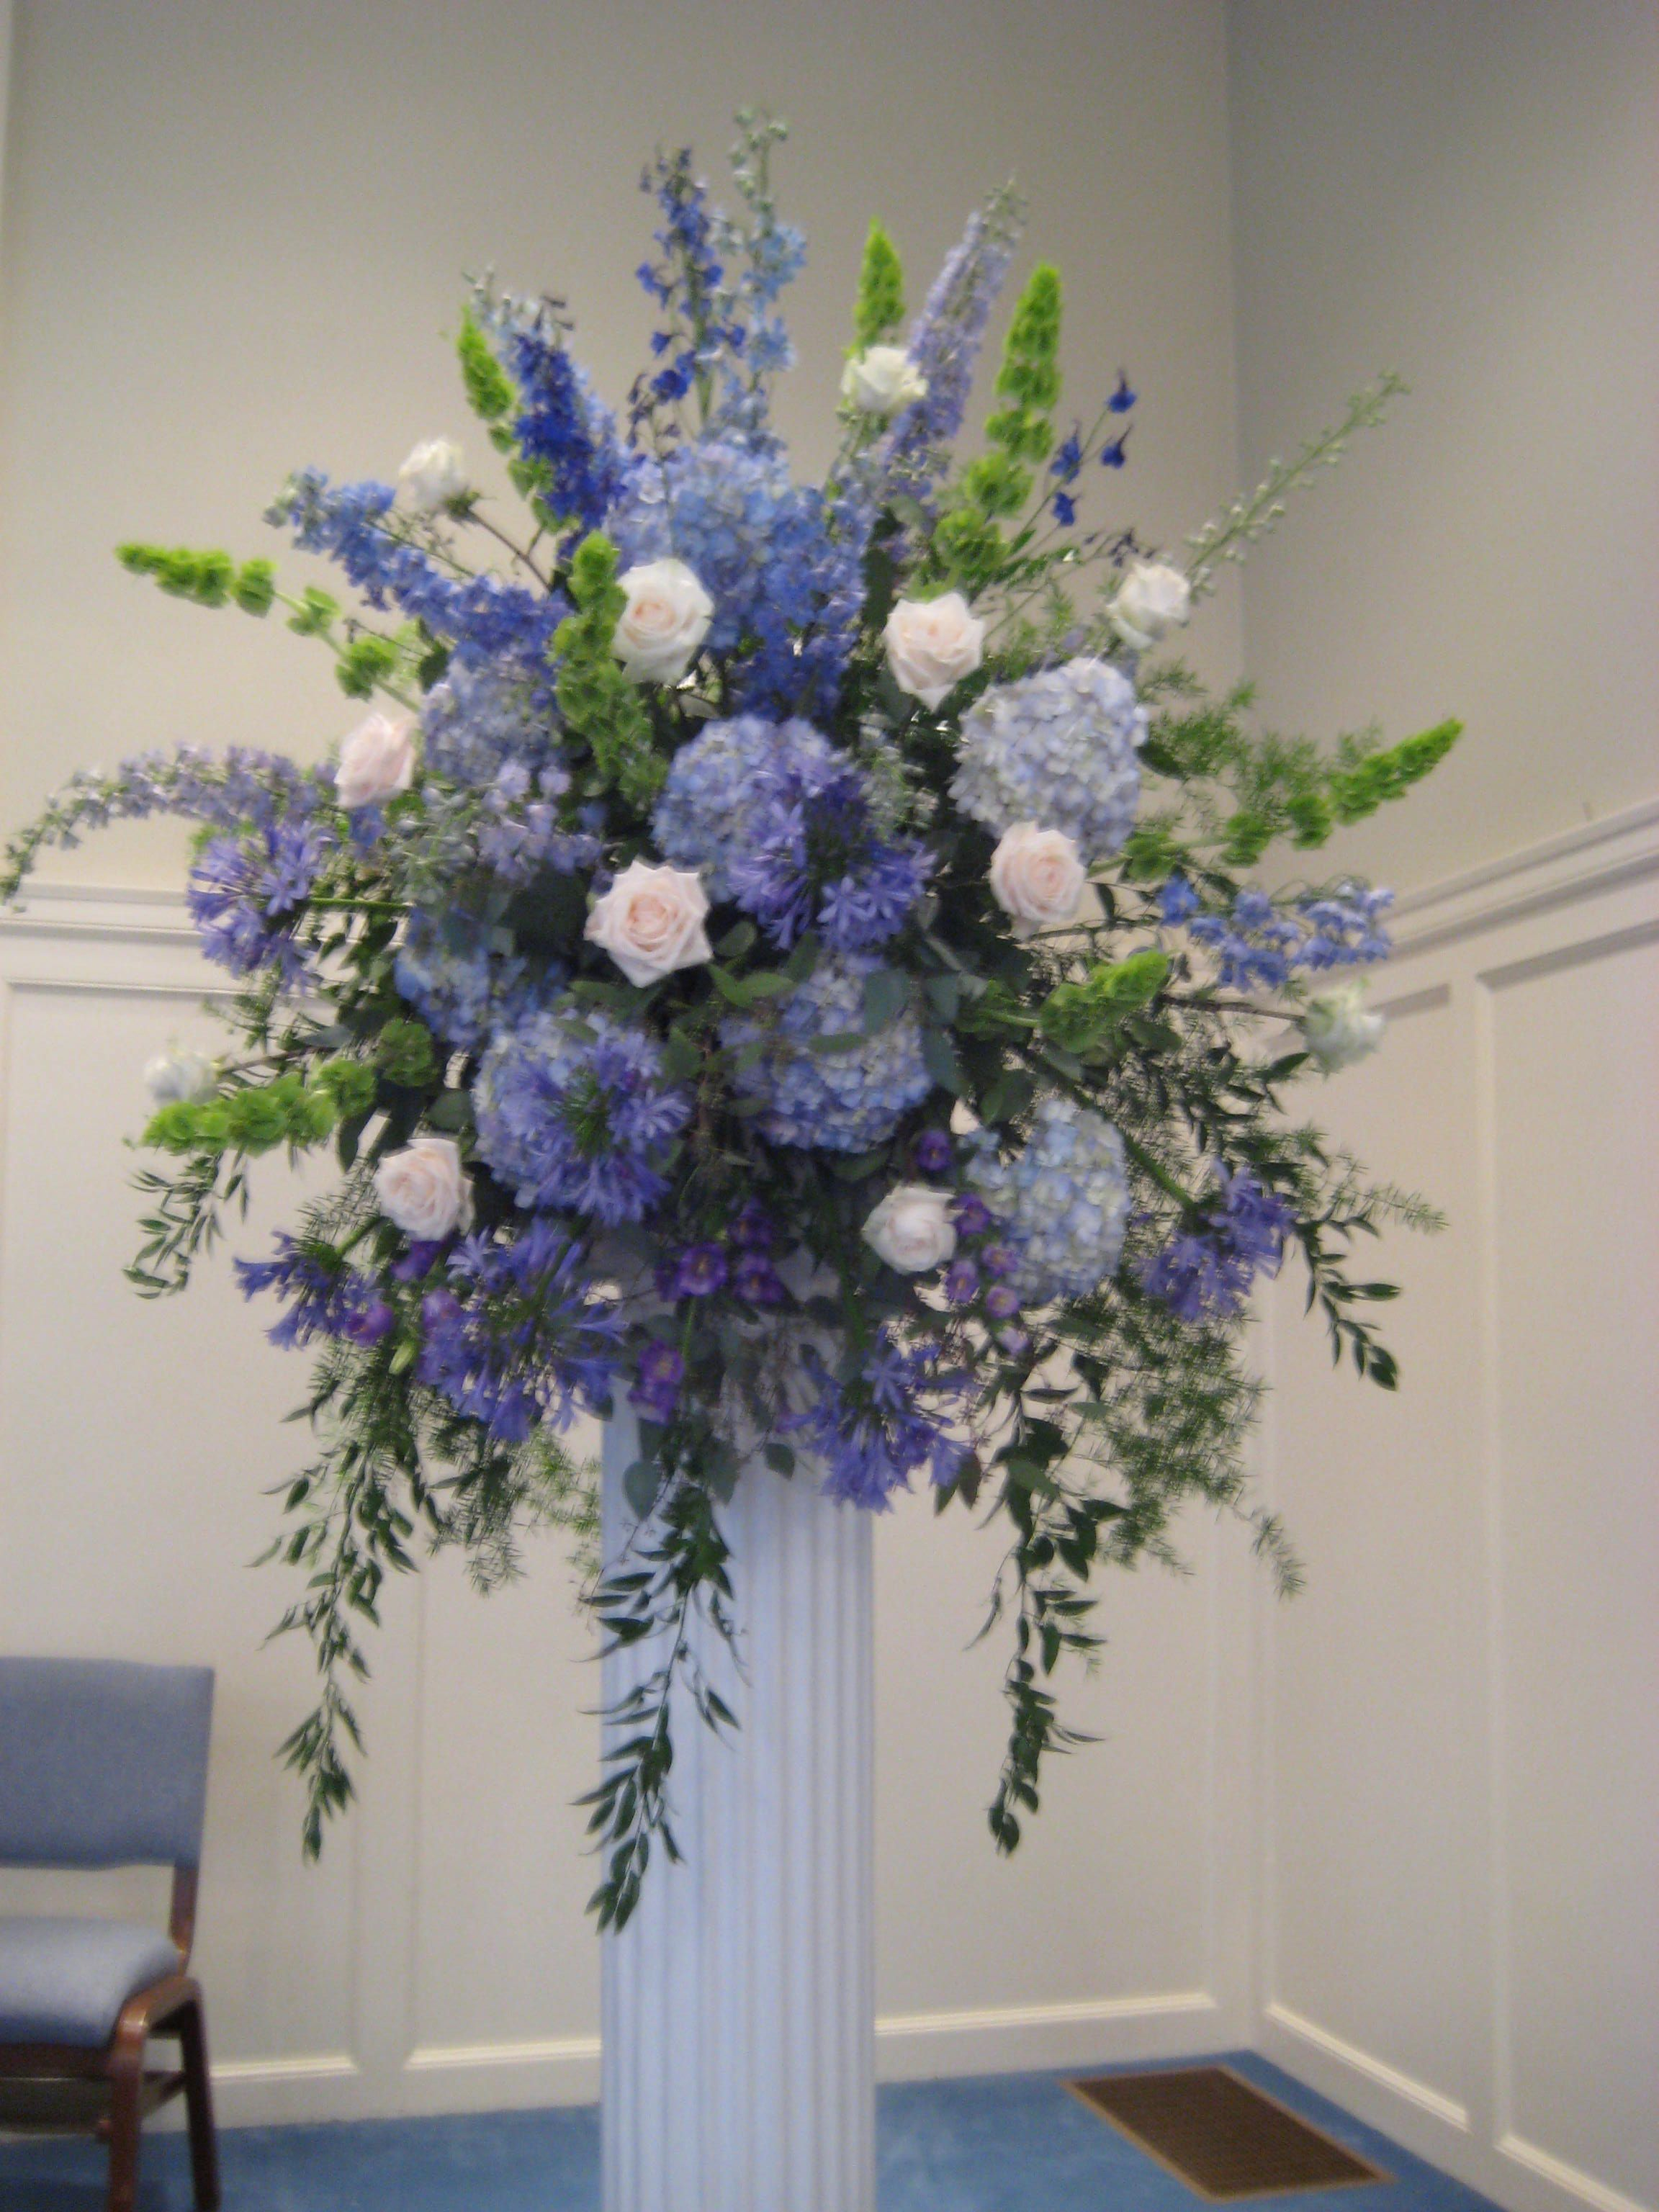 Hydrangea delphinium bells of ireland agapanthus blue for Best wedding flower arrangements